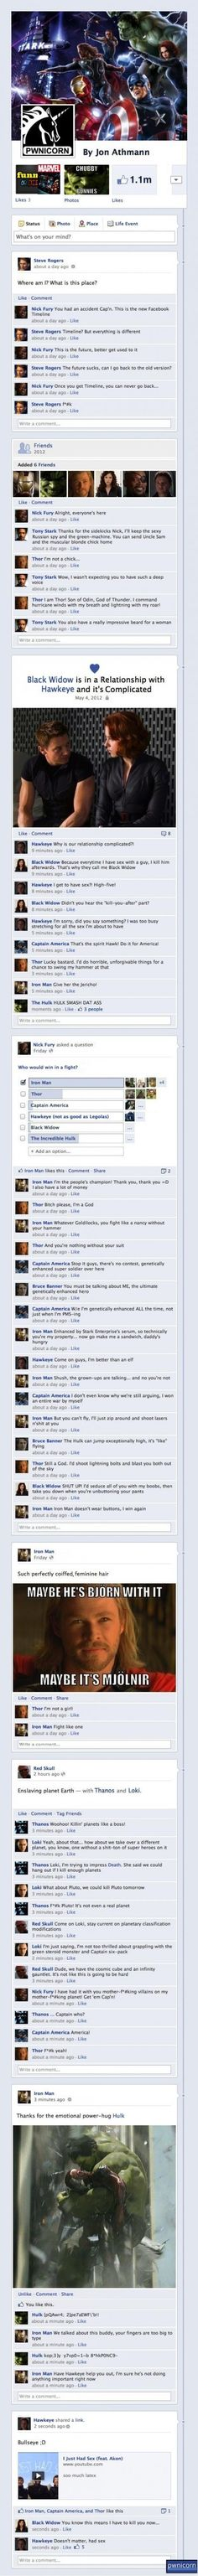 The Avengers Facebook - I feel like I have a really immature sense of humor. But at least I'm laughing, right?